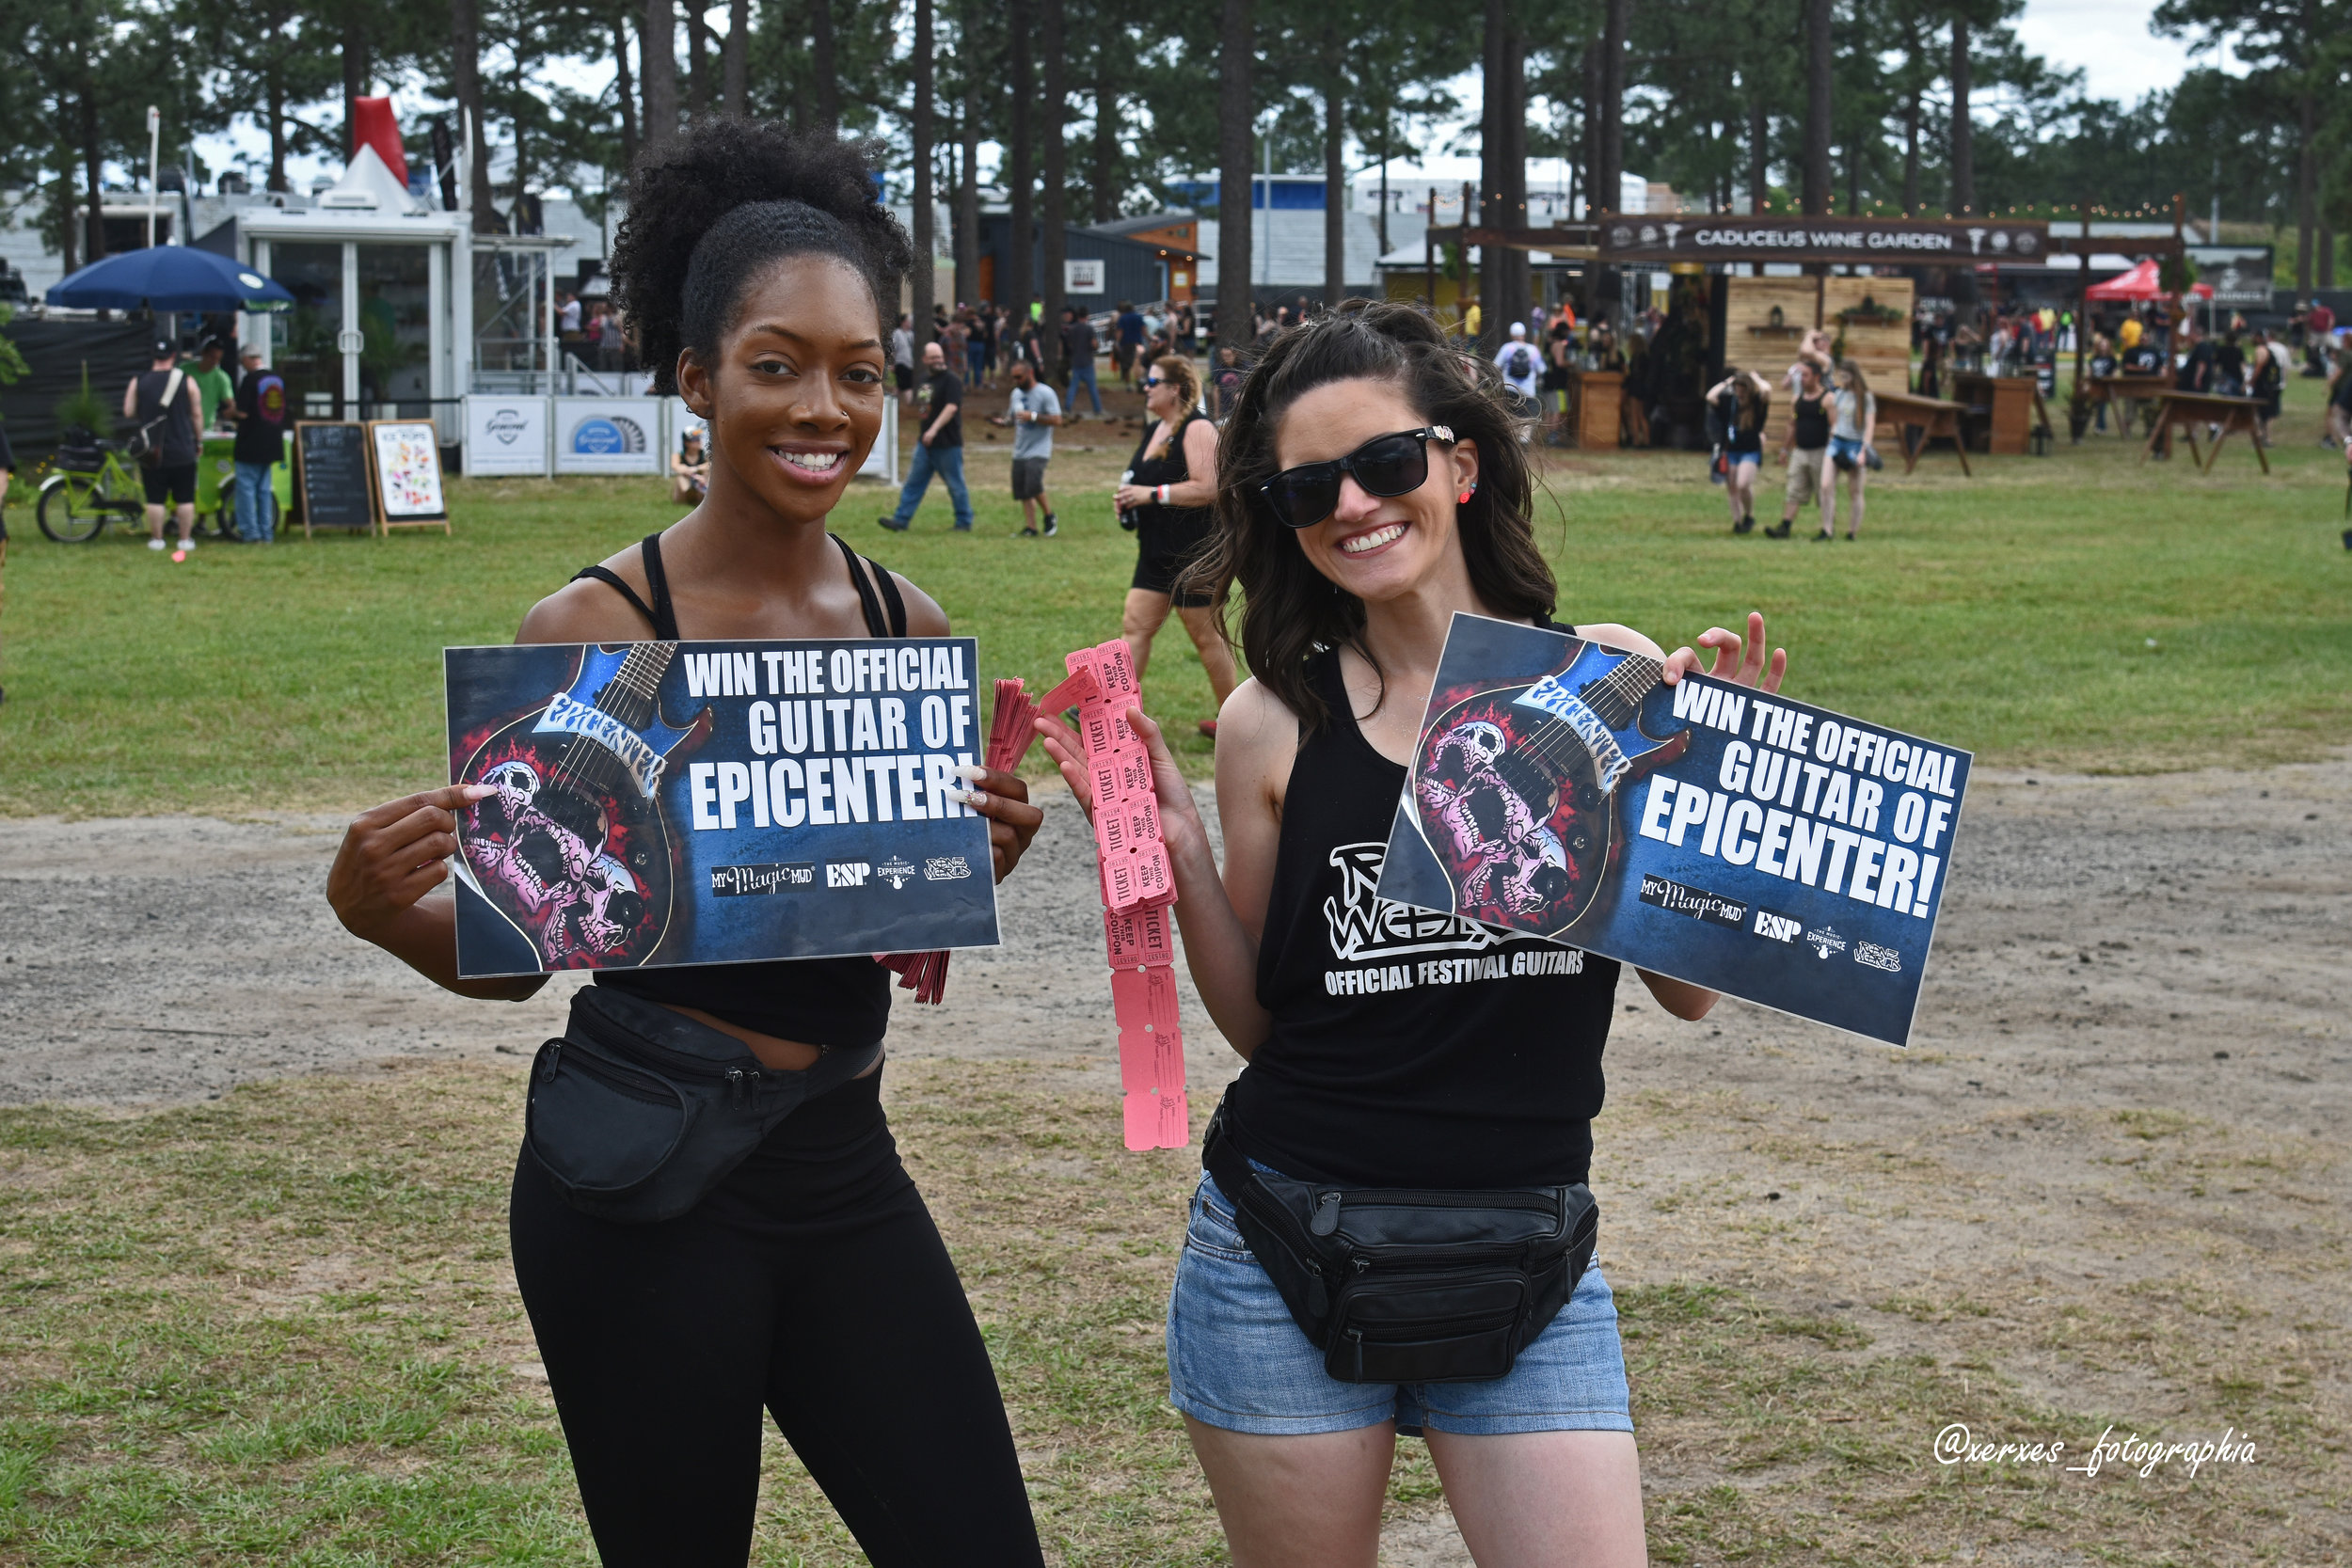 Epicenter Music Festival: And so it begins  — Concert Hopper